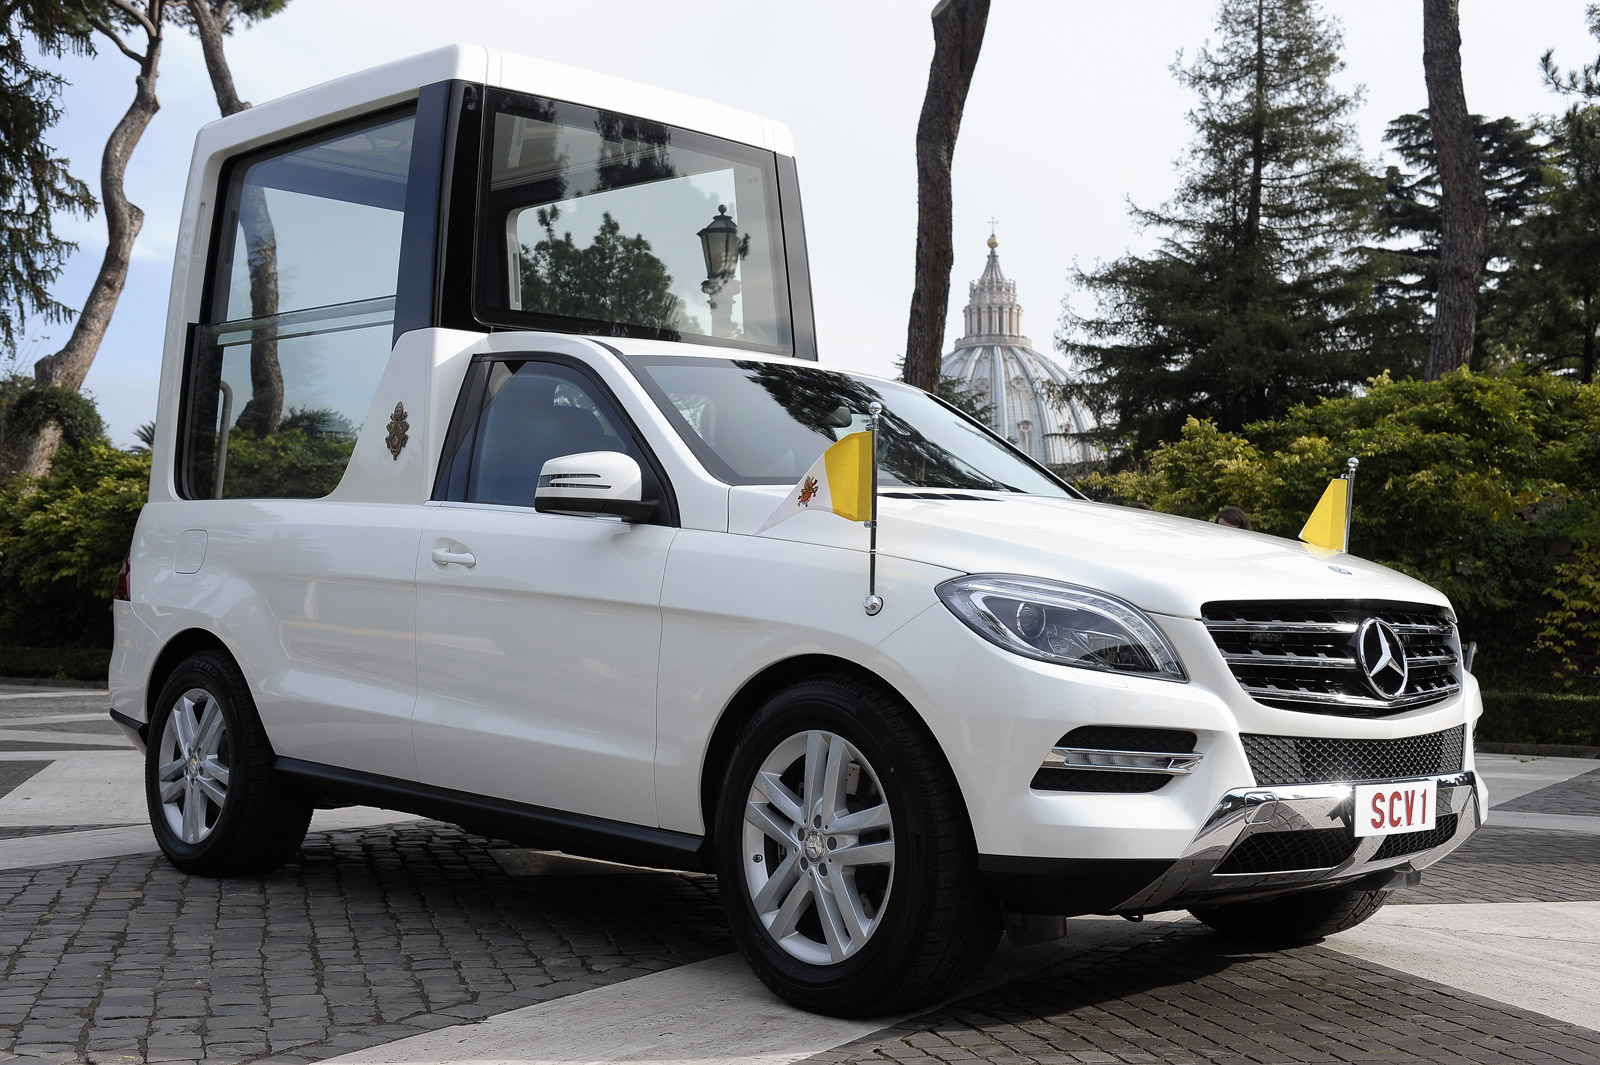 pope francis presented with mercedes m class-based popemobile